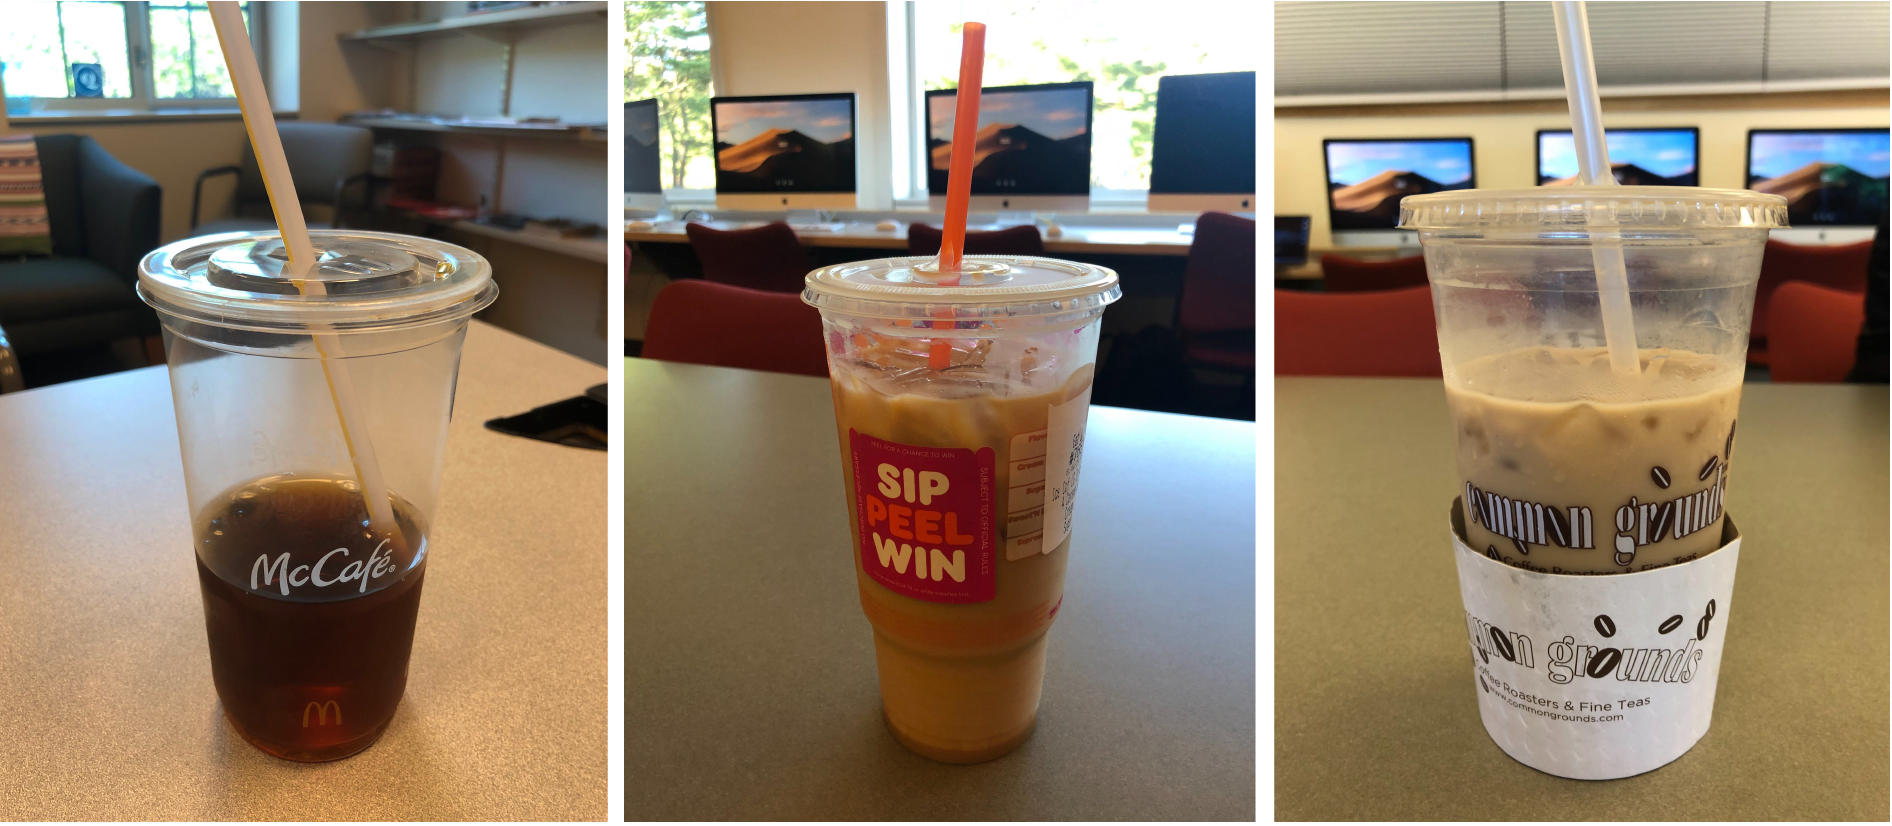 McDonalds and Dunkin Donuts gave customers plastic straws at the drive through window on Friday, Sept. 20, and Common Grounds left plastic straws near the milk station, in violation of a new ordinance. Stores must keep straws behind the counter and may give to customers only when they request them.